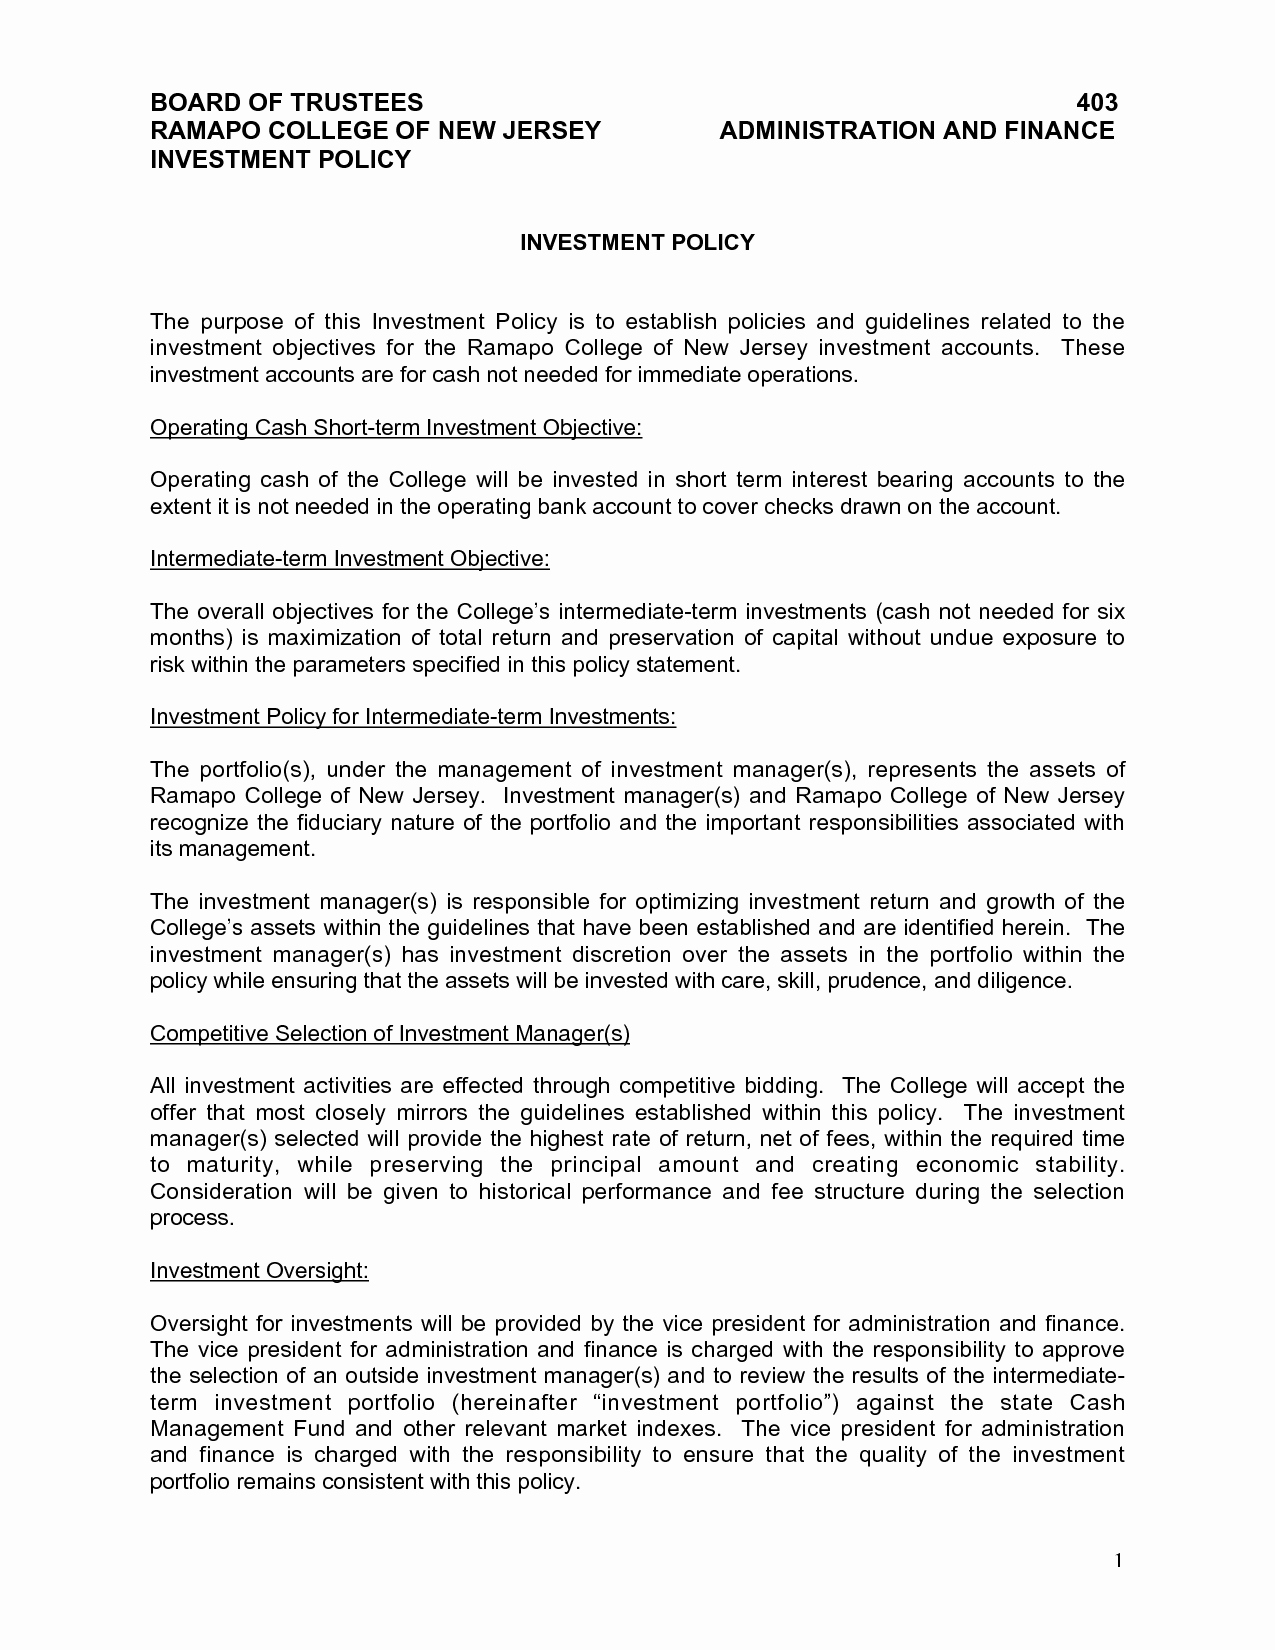 Investment Policy Statement Template Beautiful Investment Policy Statement Template